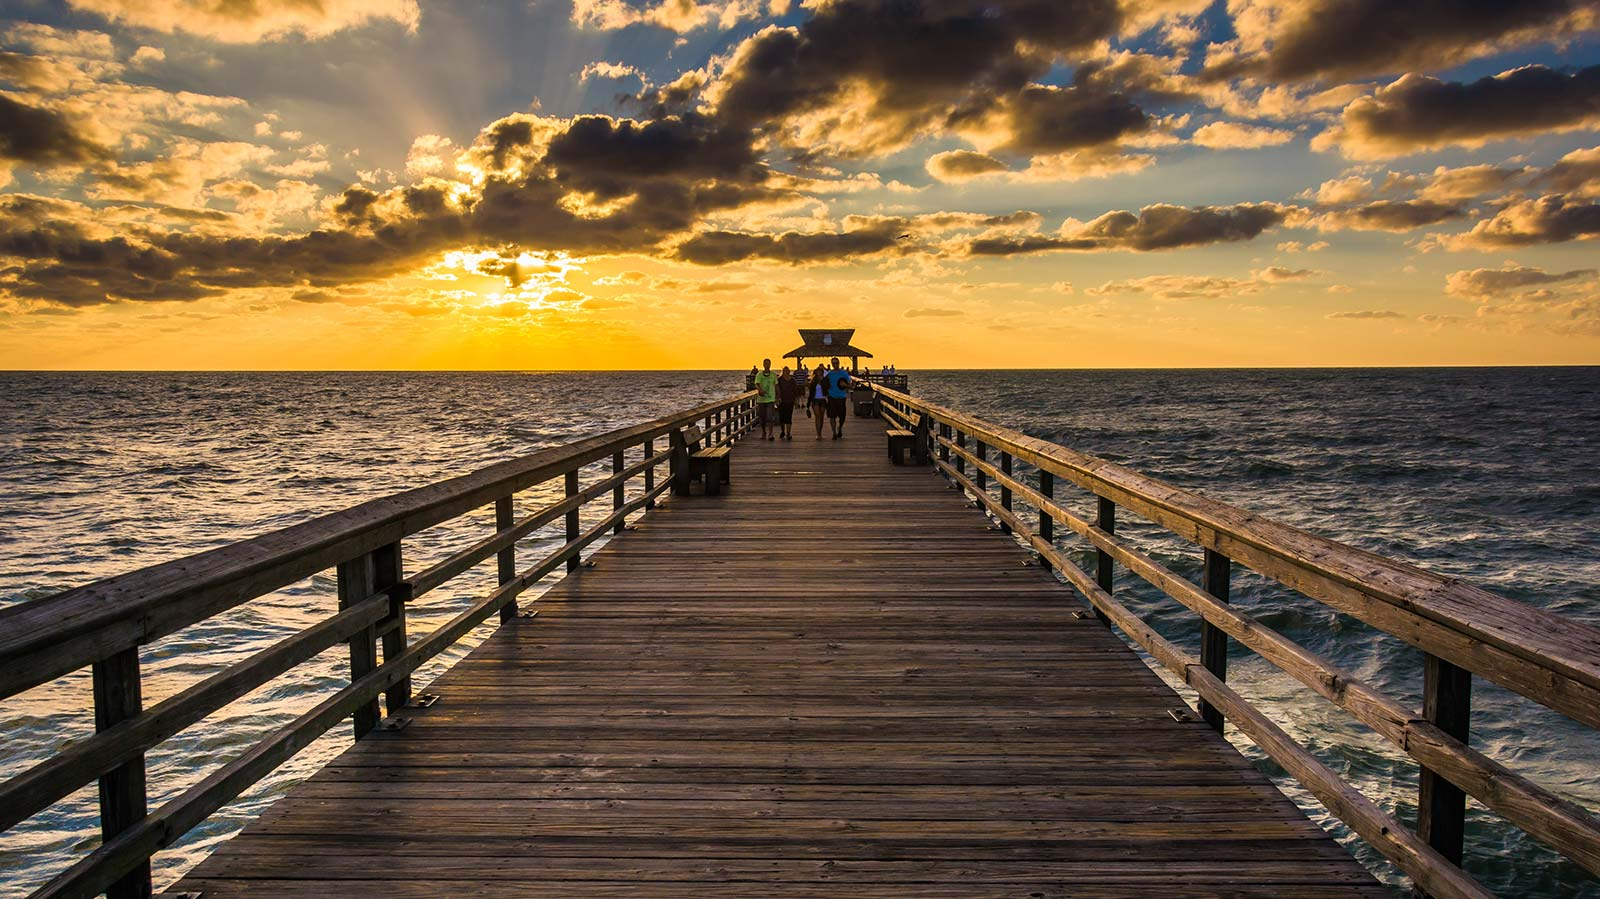 Naples, Florida Pier | Sunset Coast Construction Services, LLC